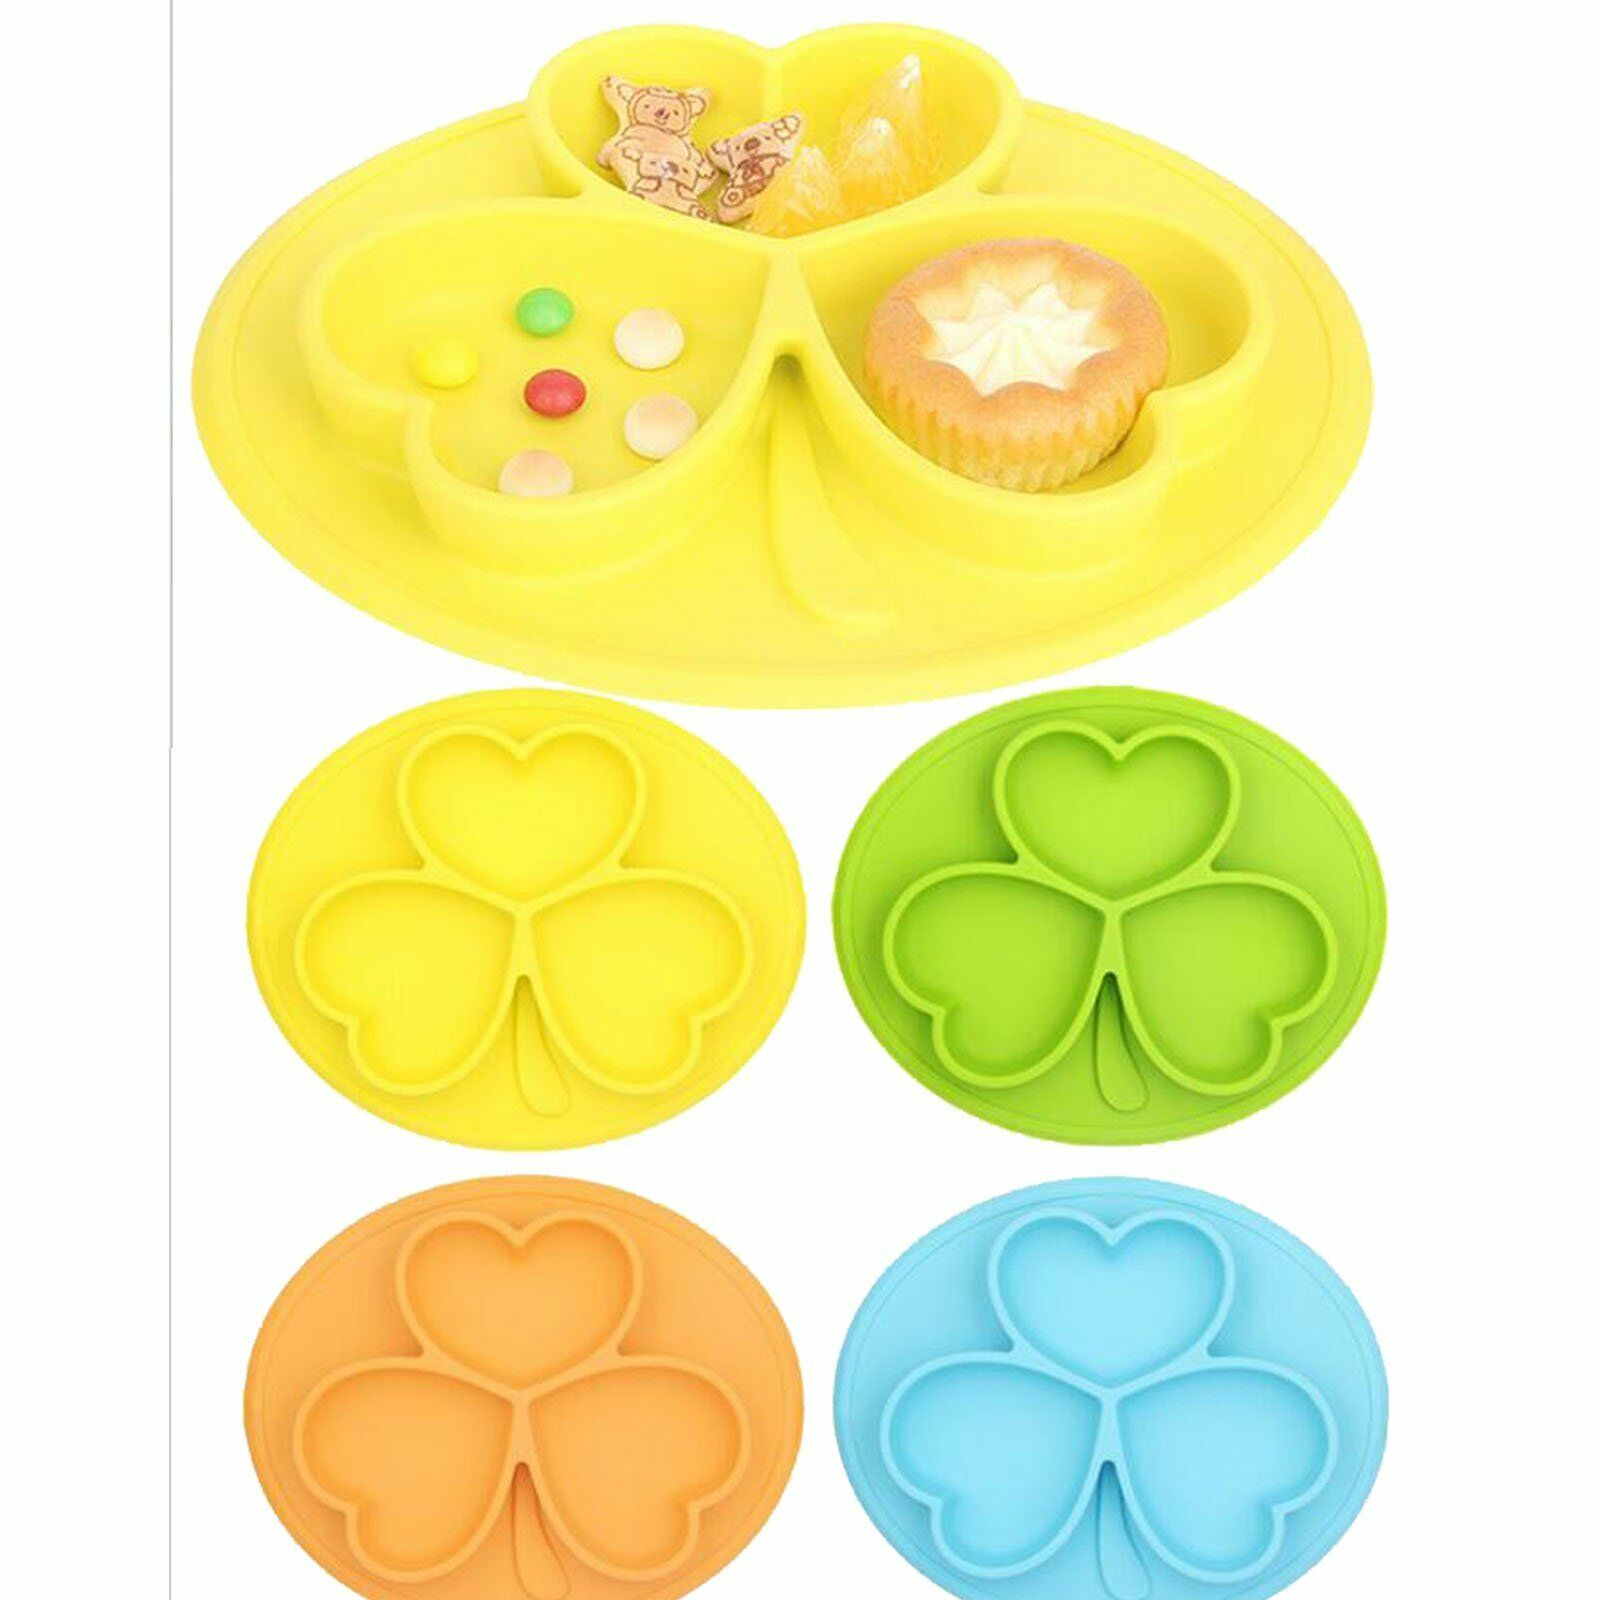 One-Piece Silicone Placemat Food Plate Mat Baby Toddler Child Kids Divided Bowl 9